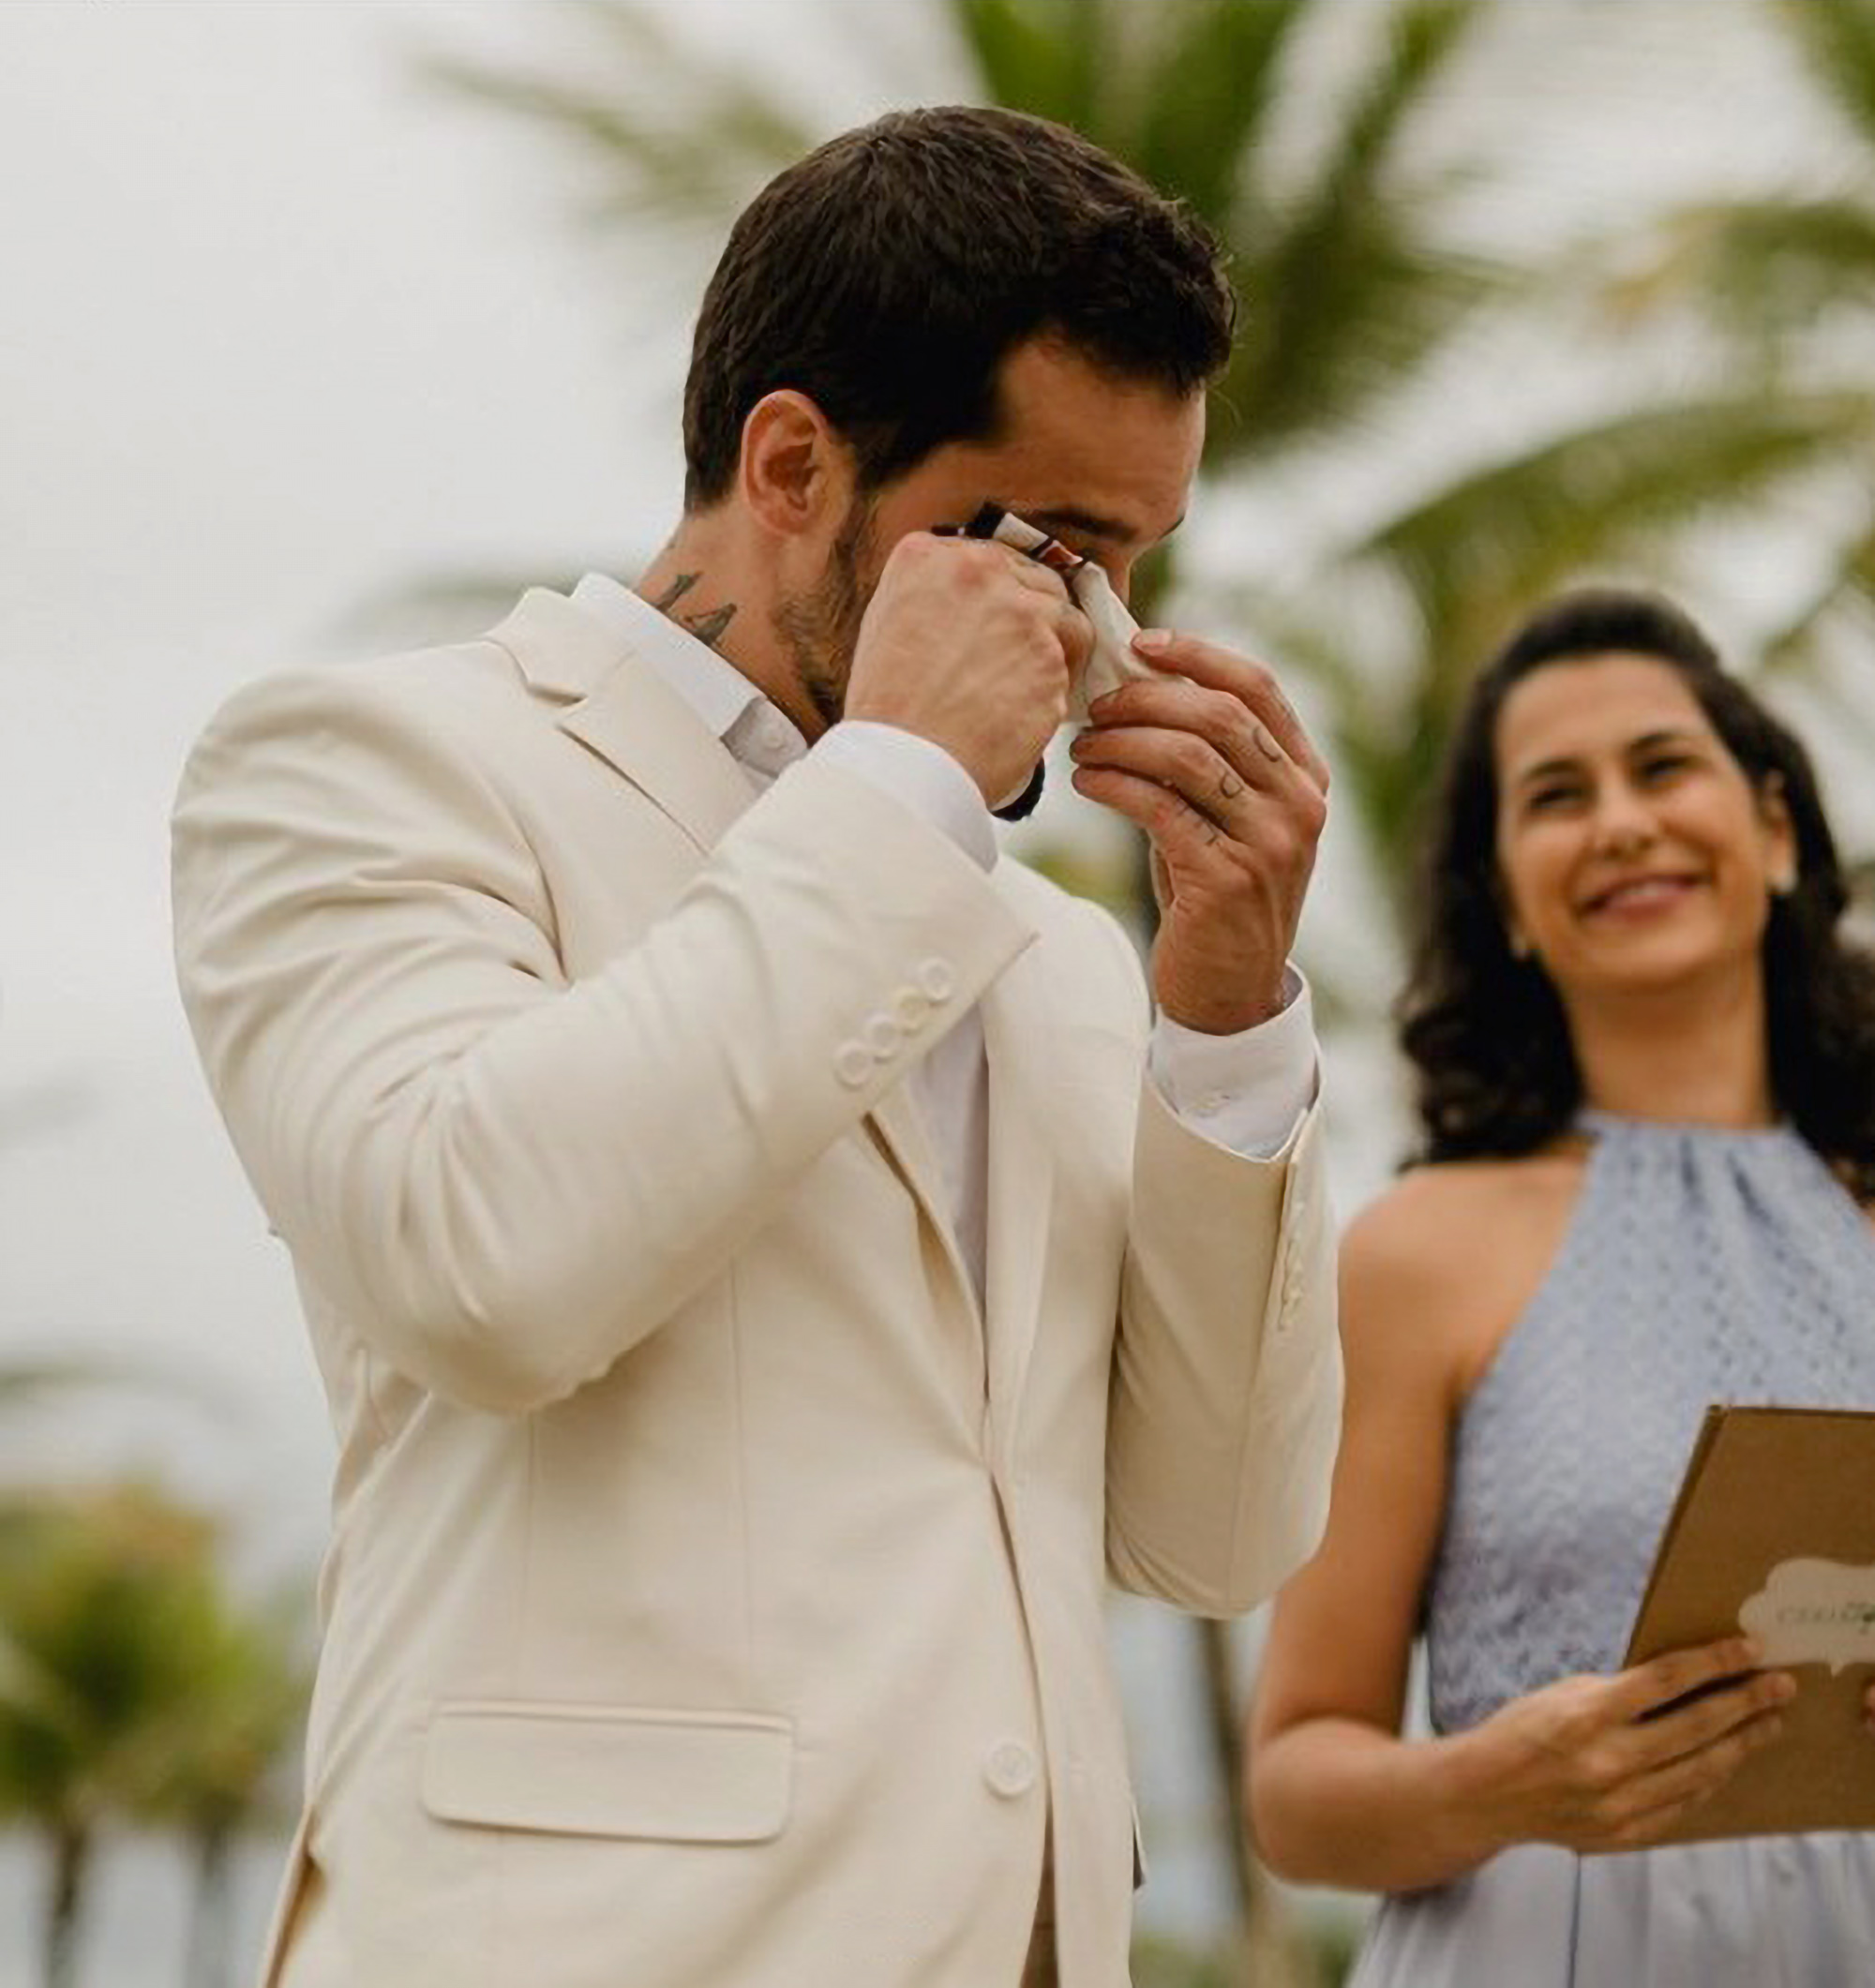 Man Marries Himself In 'Sologamist' Ceremony After Fiancee Calls Off Wedding